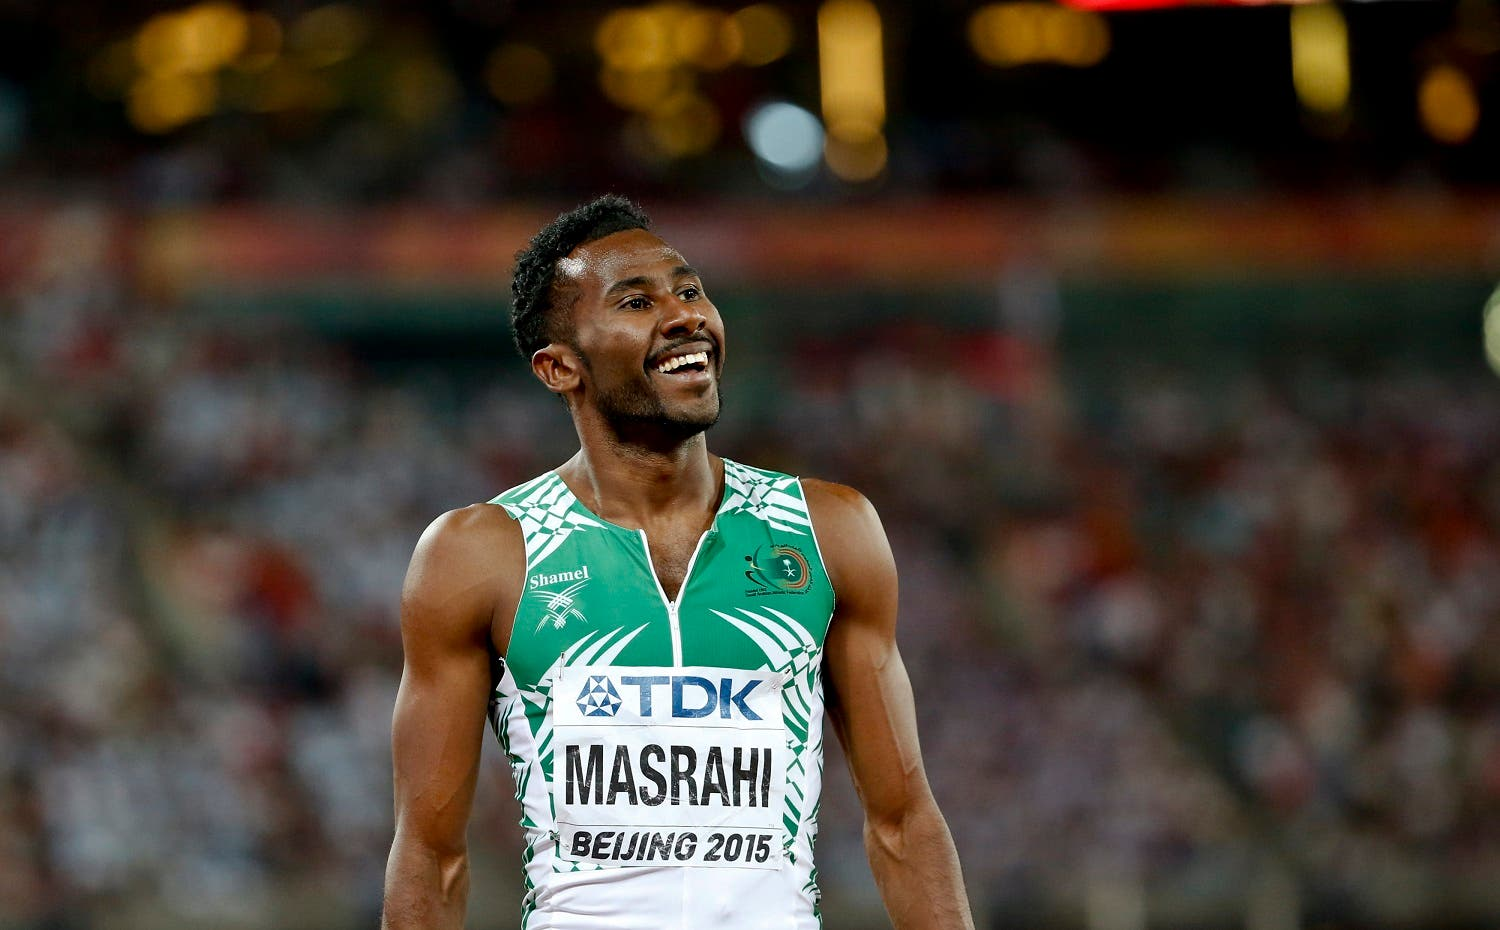 Yousef Ahmed Masrahi of Saudi Arabia competes in the men's 400m event during the 15th IAAF World Championships at the National Stadium in Beijing, China August 24, 2015. REUTERS